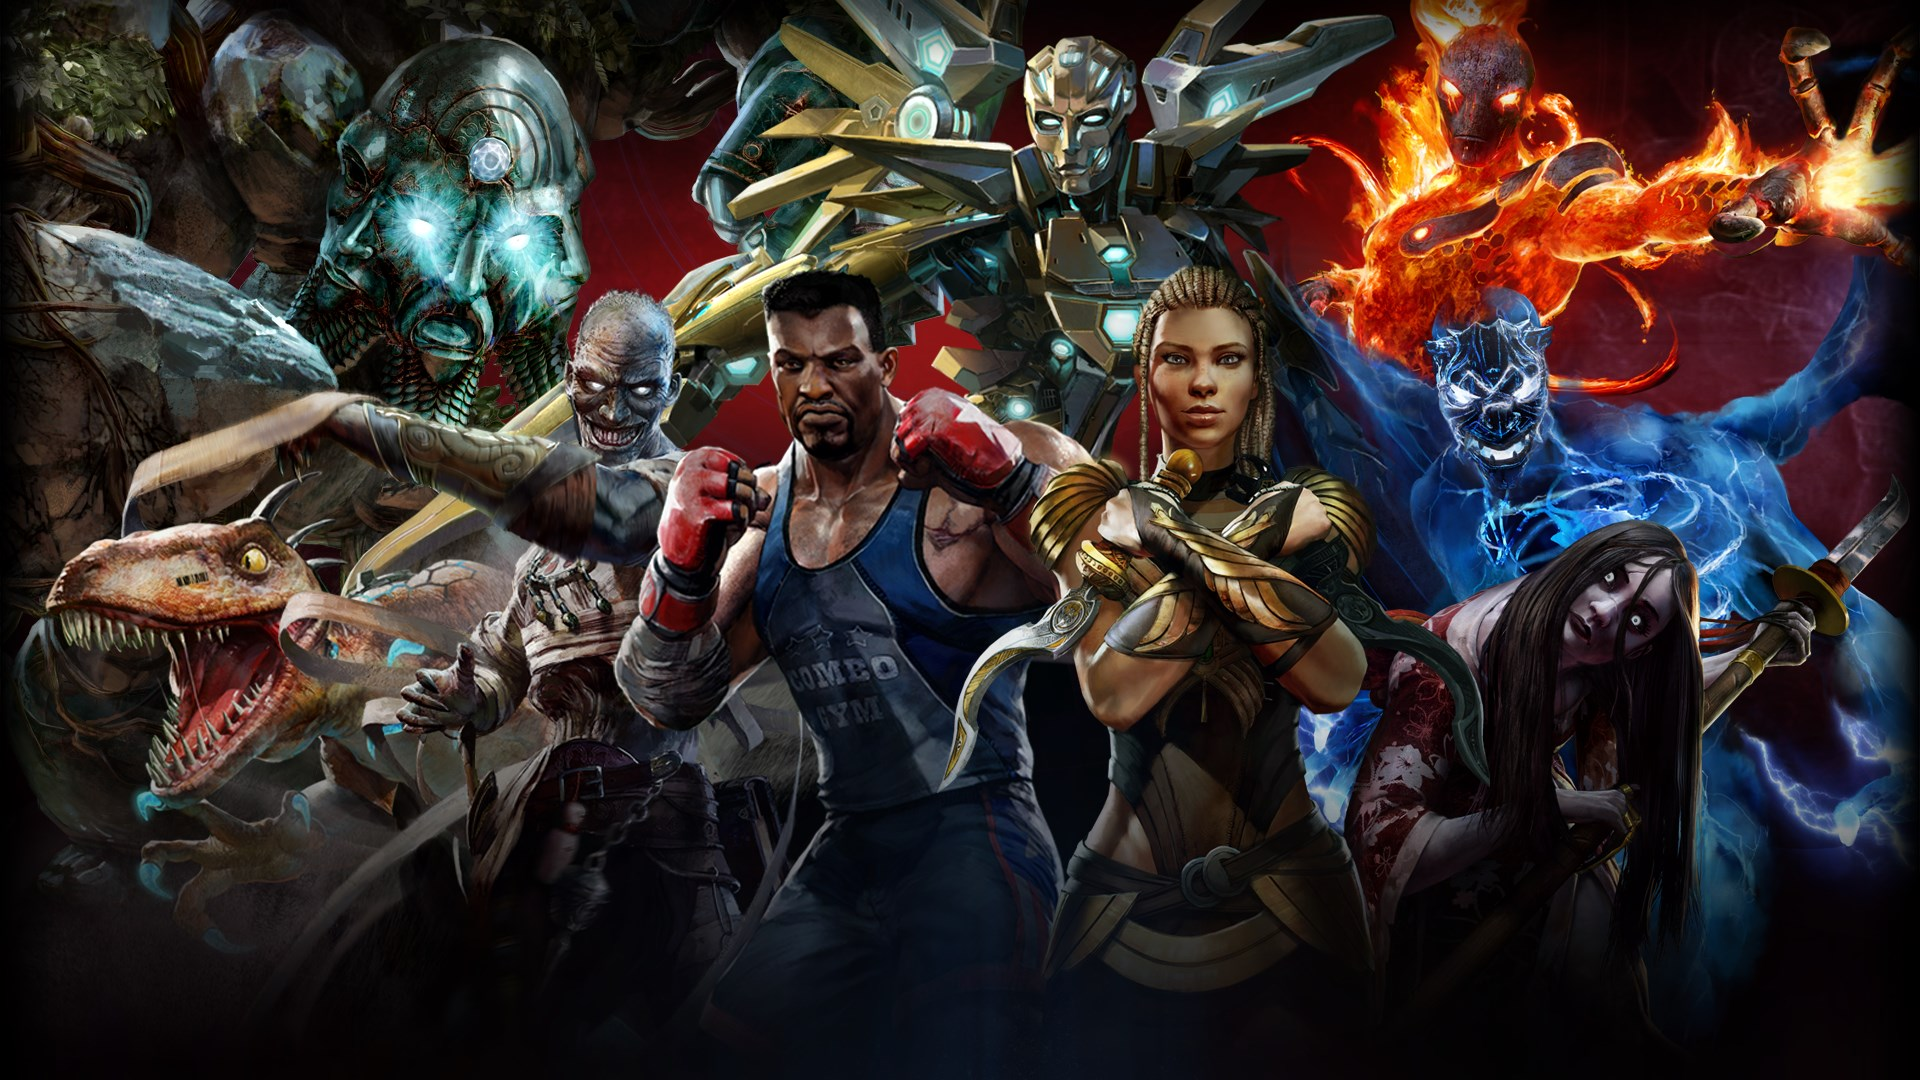 Killer Instinct: Season 2 Combo Breaker Add-On